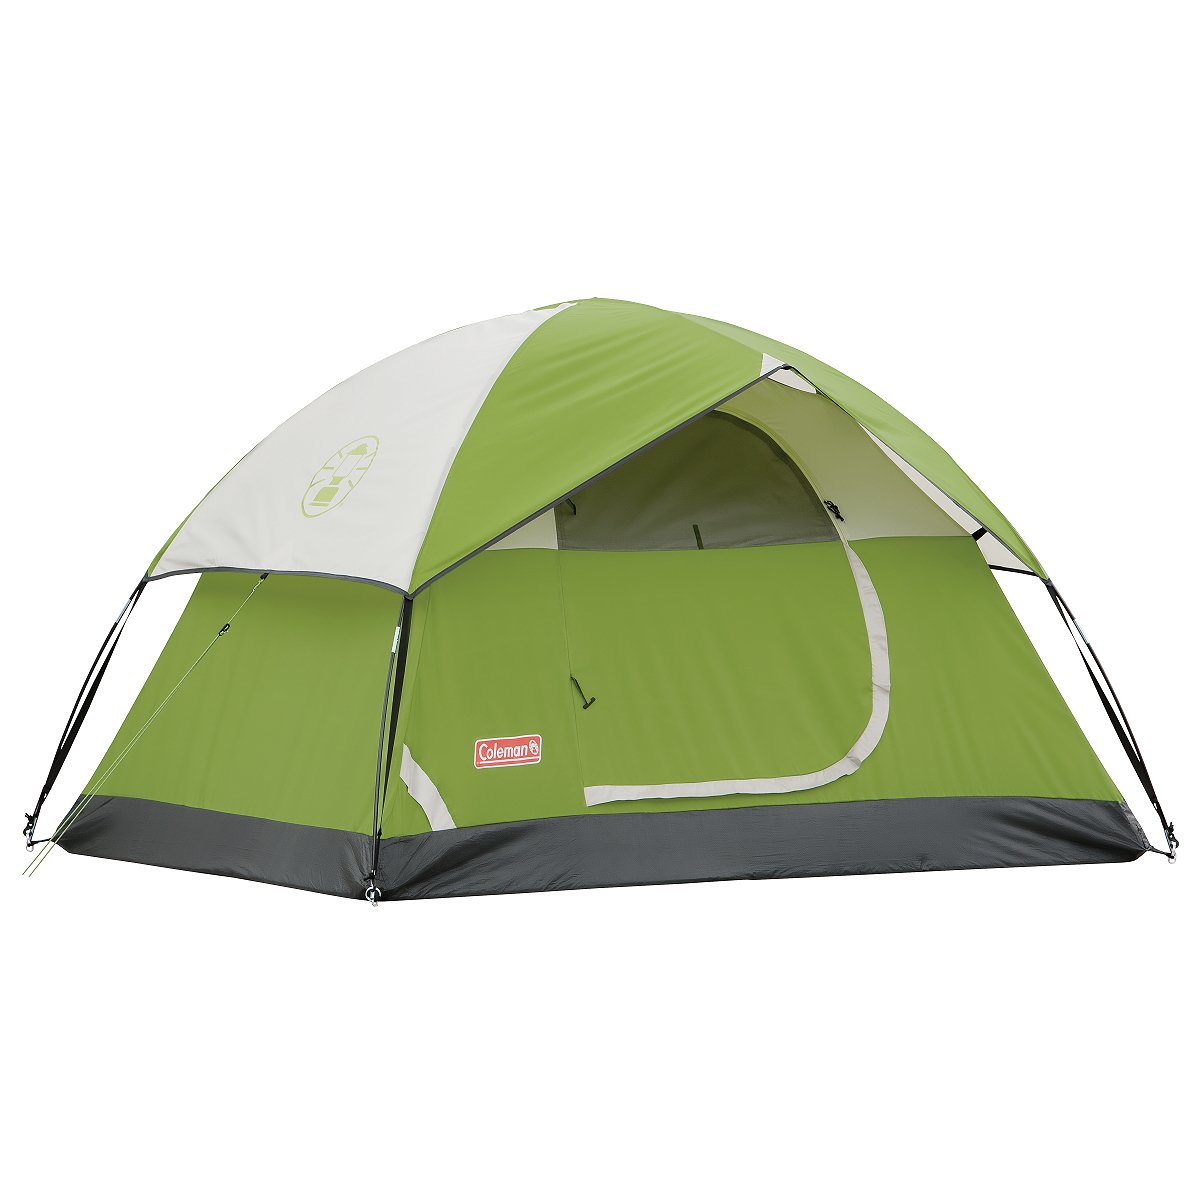 Coleman Sundome 2 7'X5' Backpacking Tent